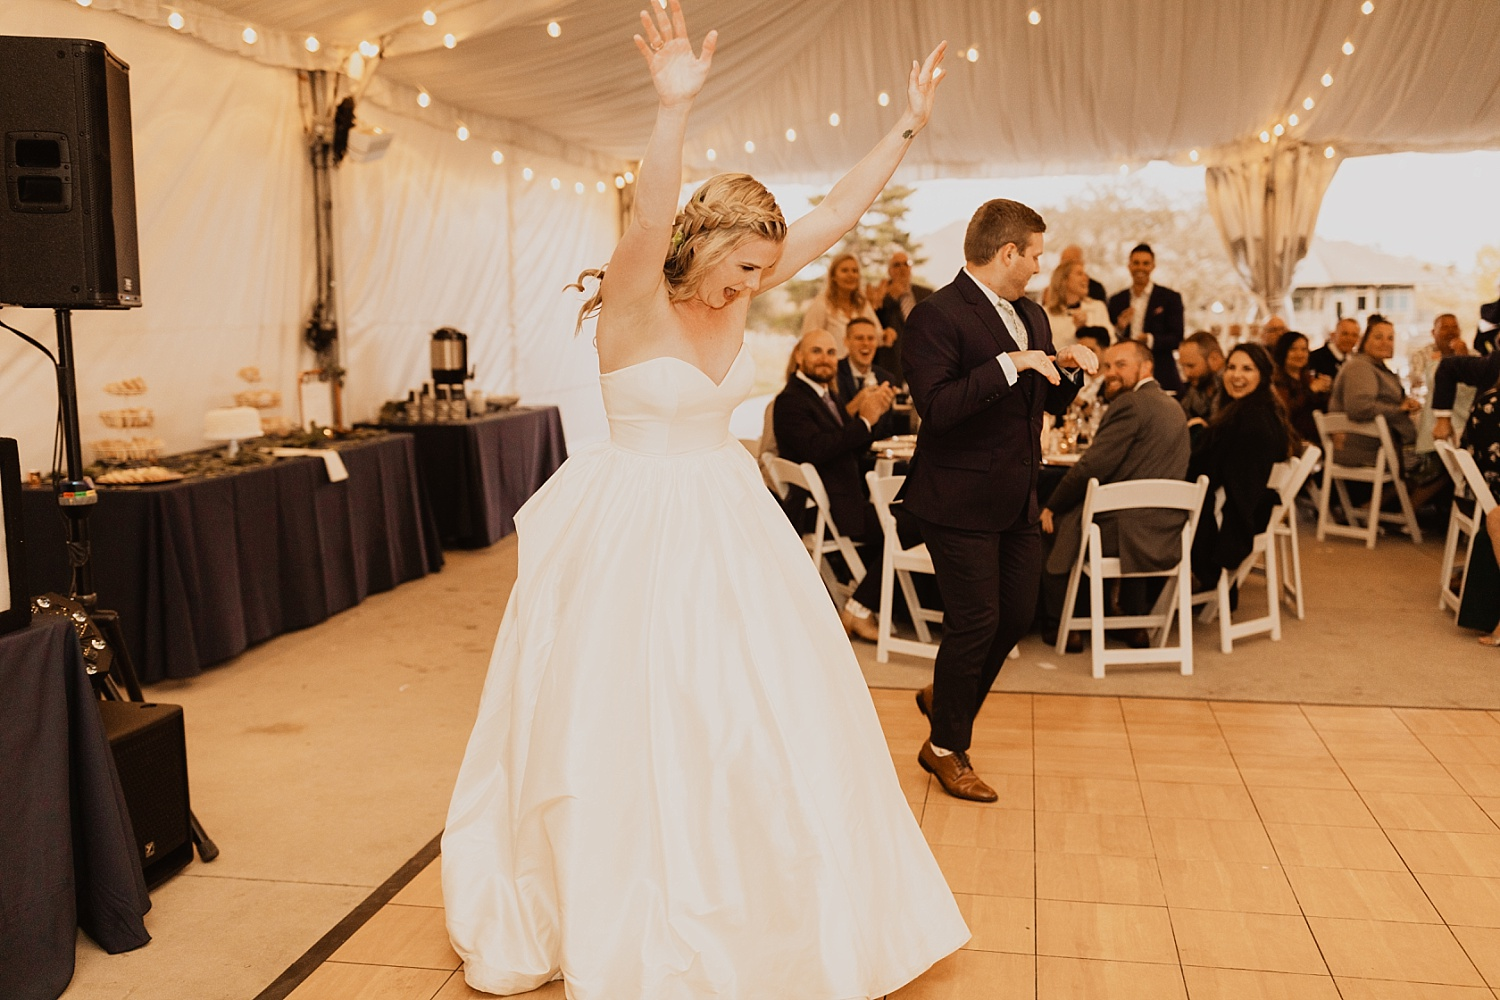 Colorado Wedding | First Dance | Tent Reception | Cassie Madden Photography